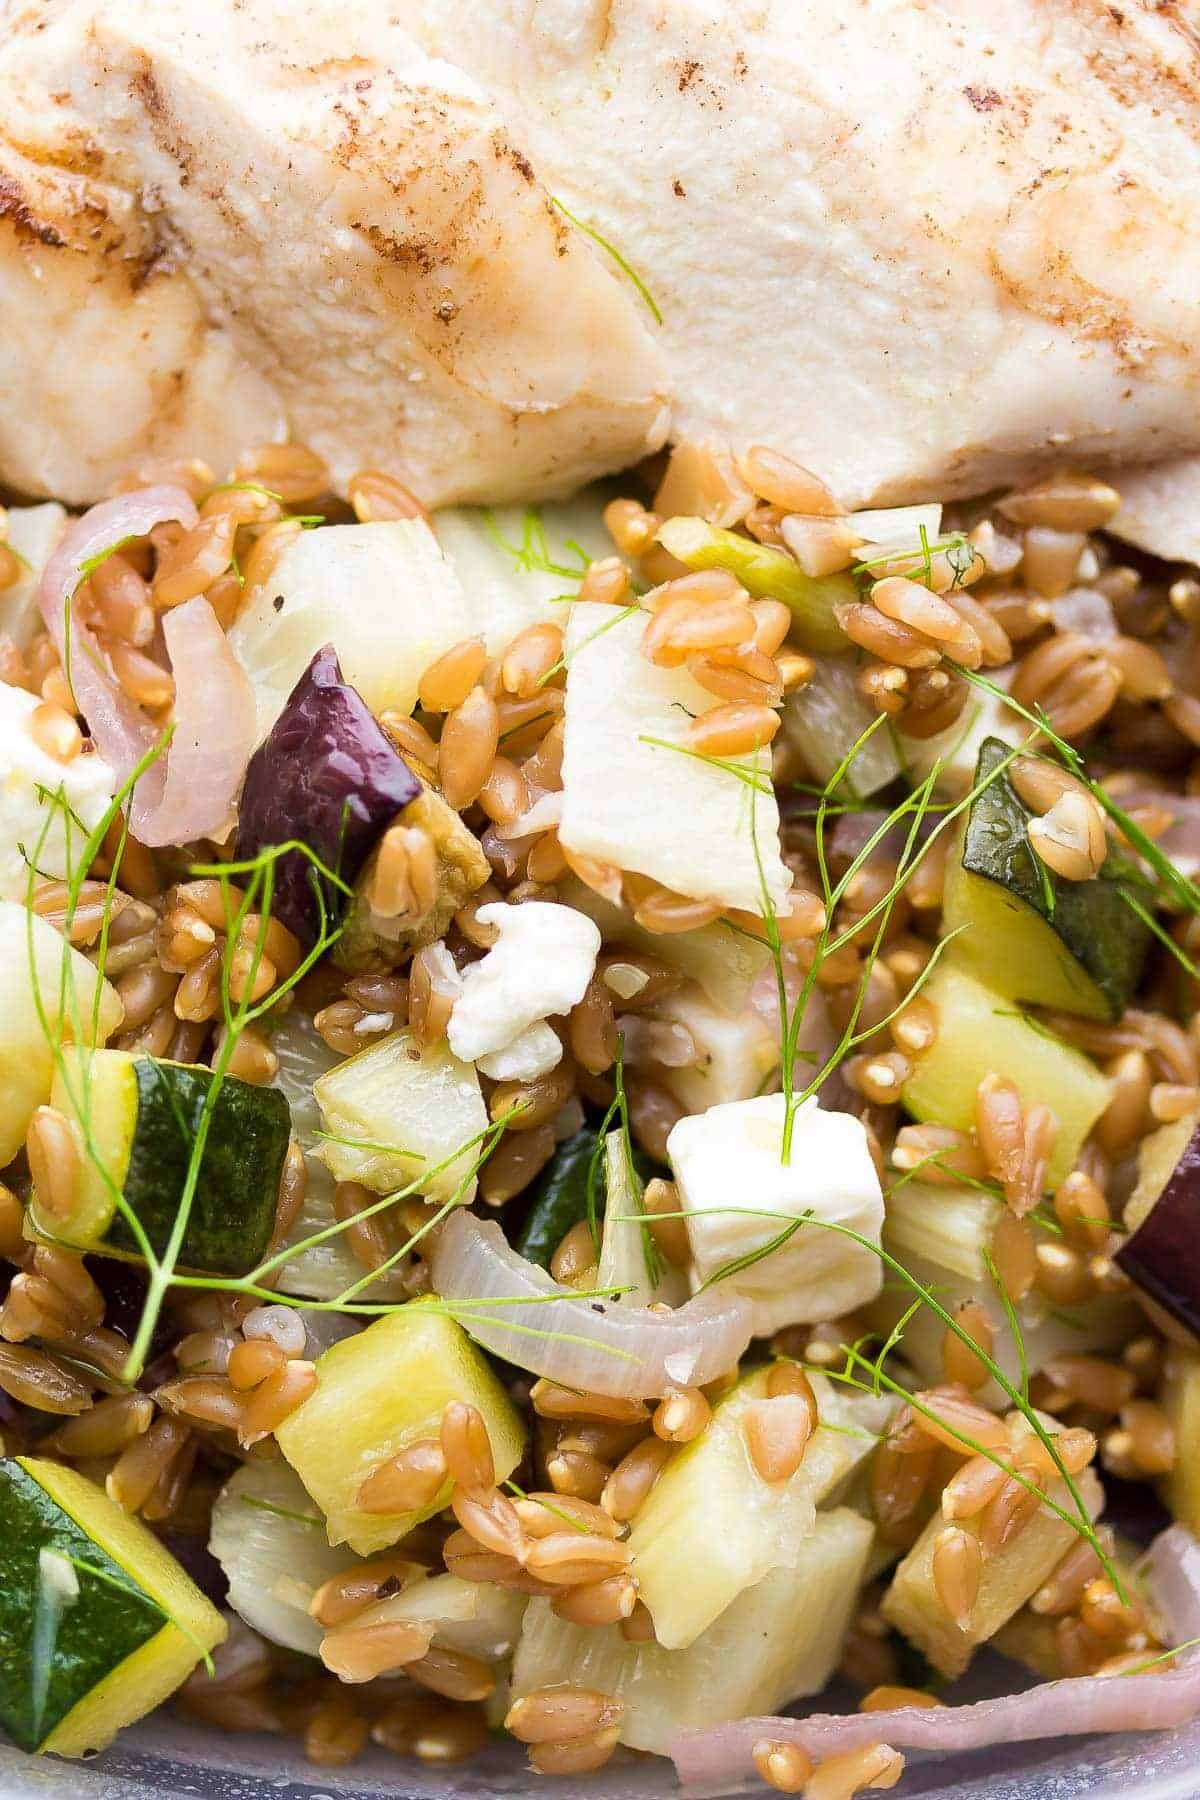 Mediterranean Farro Chicken Lunch Bowl Recipe, make a big batch on the weekend and you'll have 4 work lunches ready